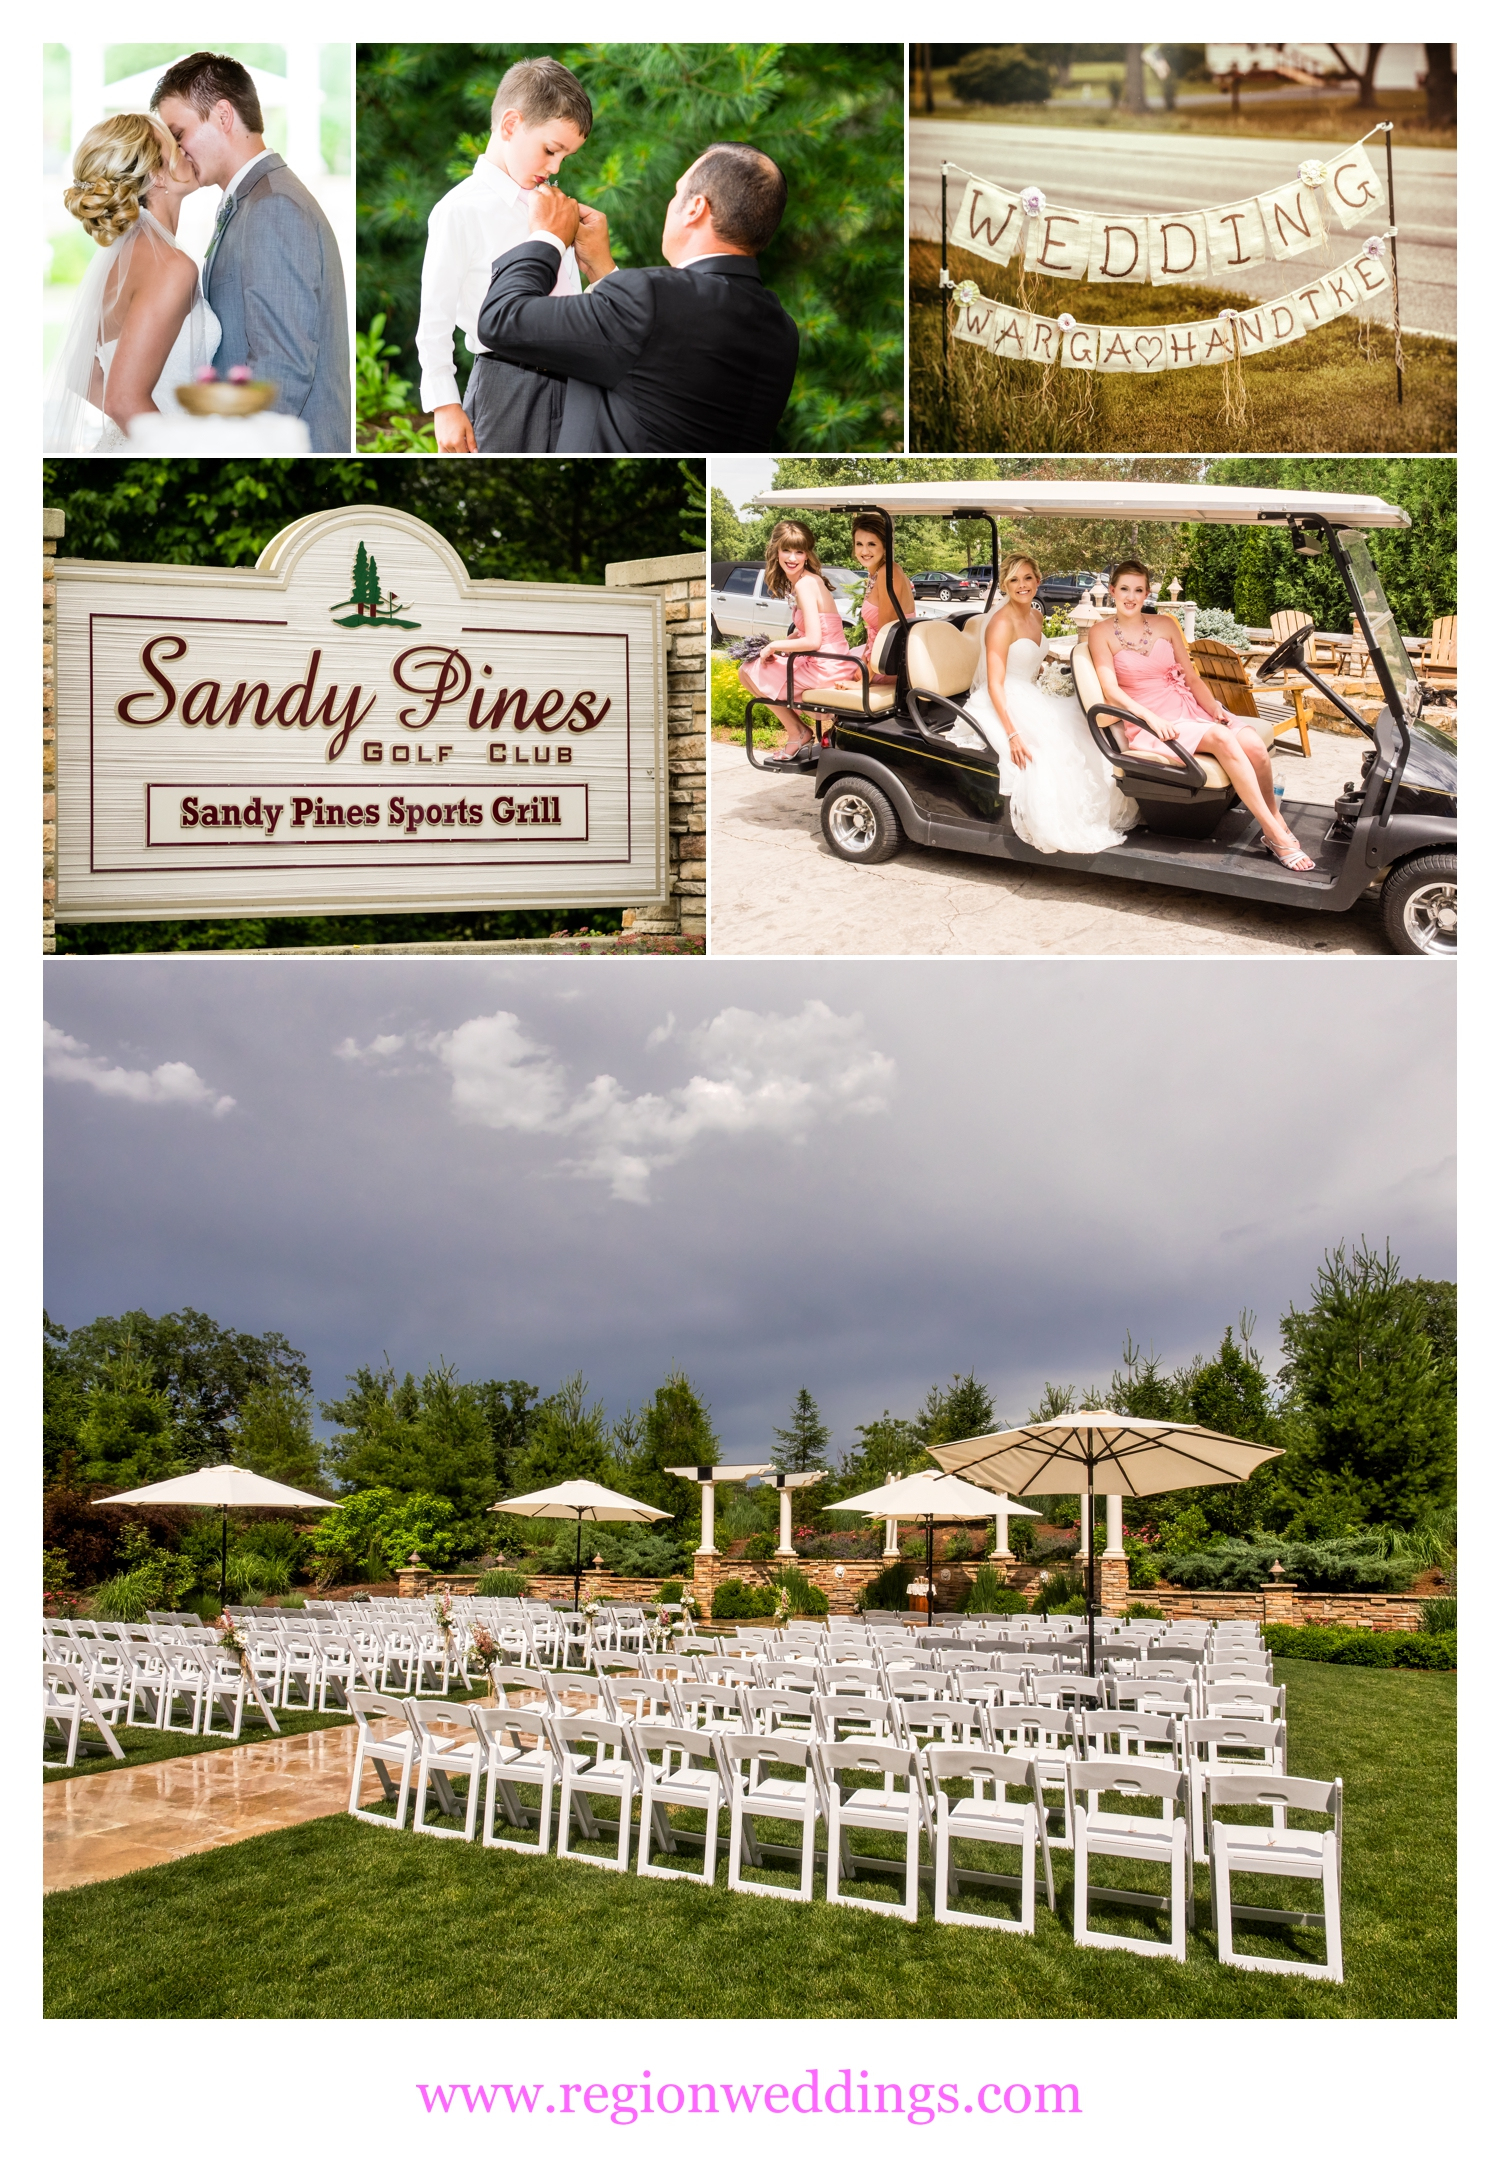 Outdoor wedding ceremony at Sandy Pines Pavilion.